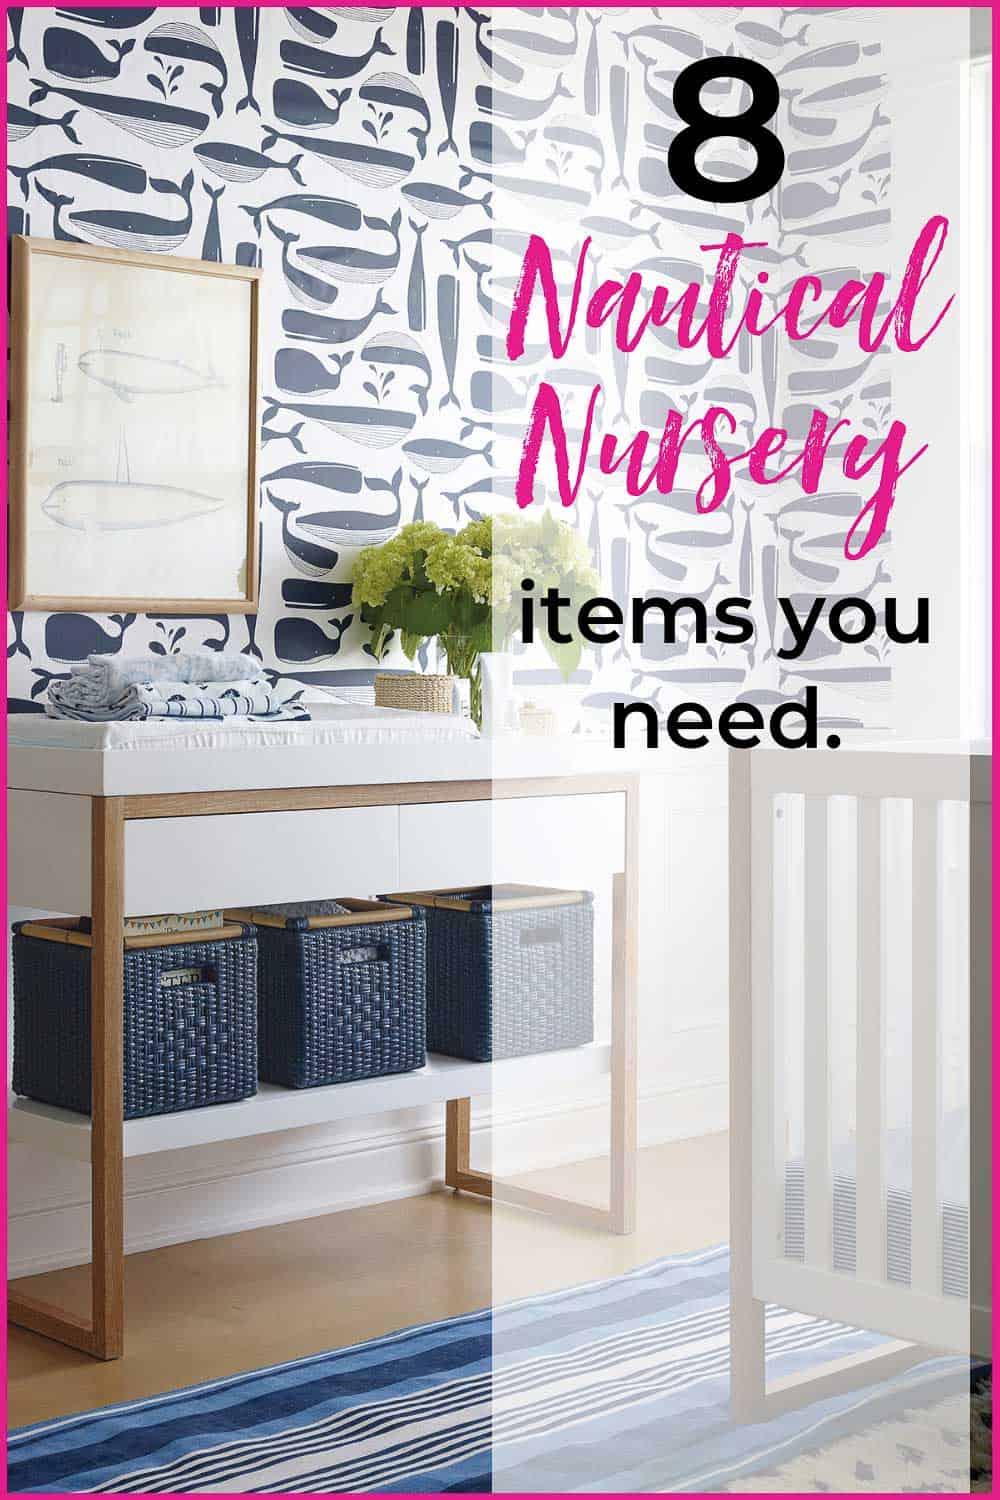 8 Elements You Need for a Perfect Nautical Nursery Now! If you've been struggling to pull a plan together for a coastal nursery or nautical inspired nursery for your little one, here's your plan! #nauticalnursery #coastalnursery #nauticalnurseryideas #nauticalnurserydecor #coastalnurseryideas #coastalnurserydecor